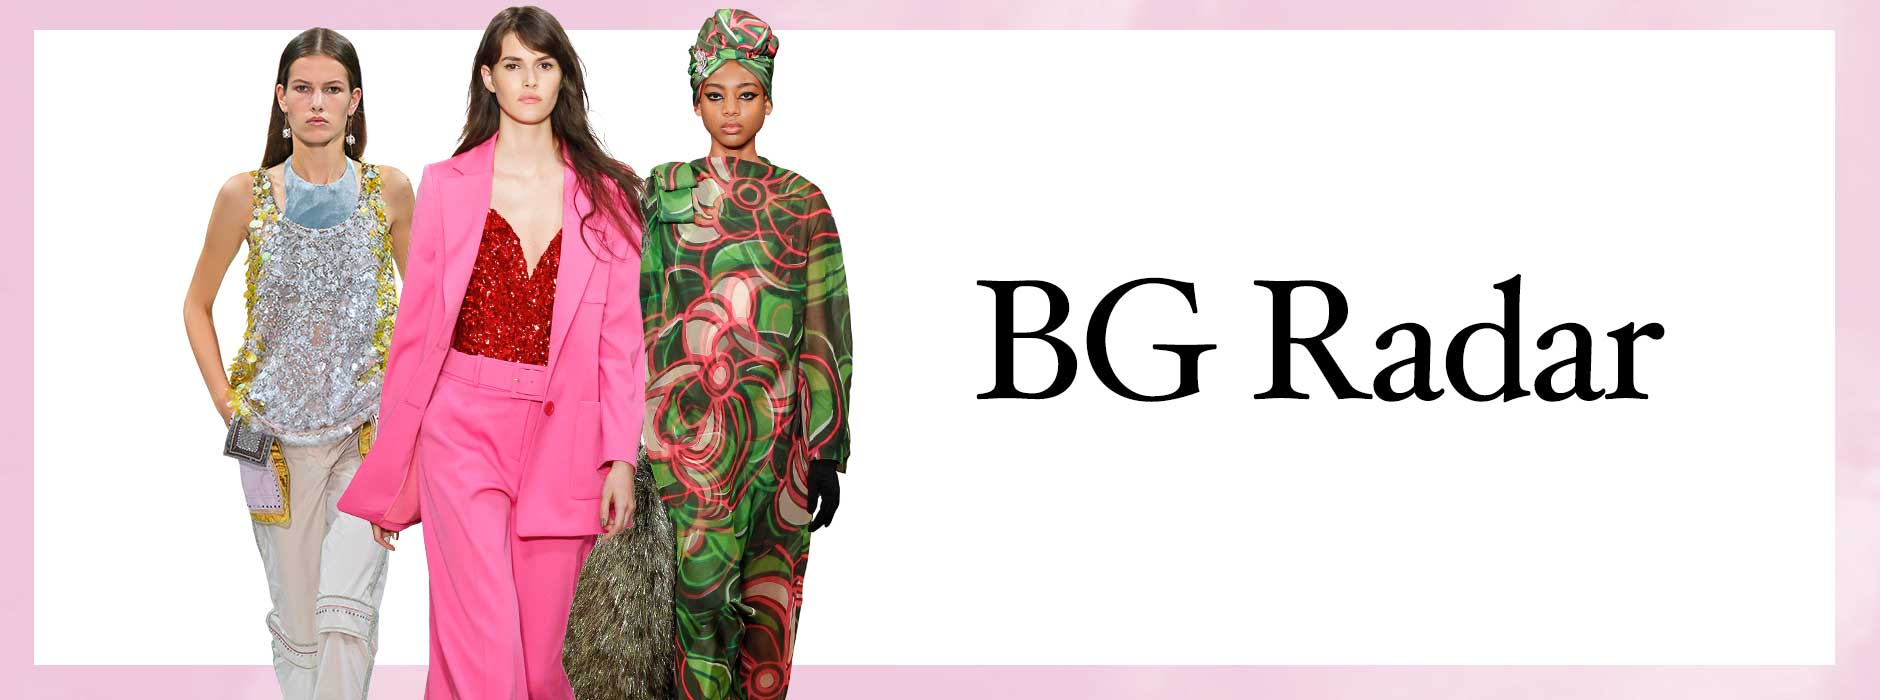 Spring Collections - BG Radar